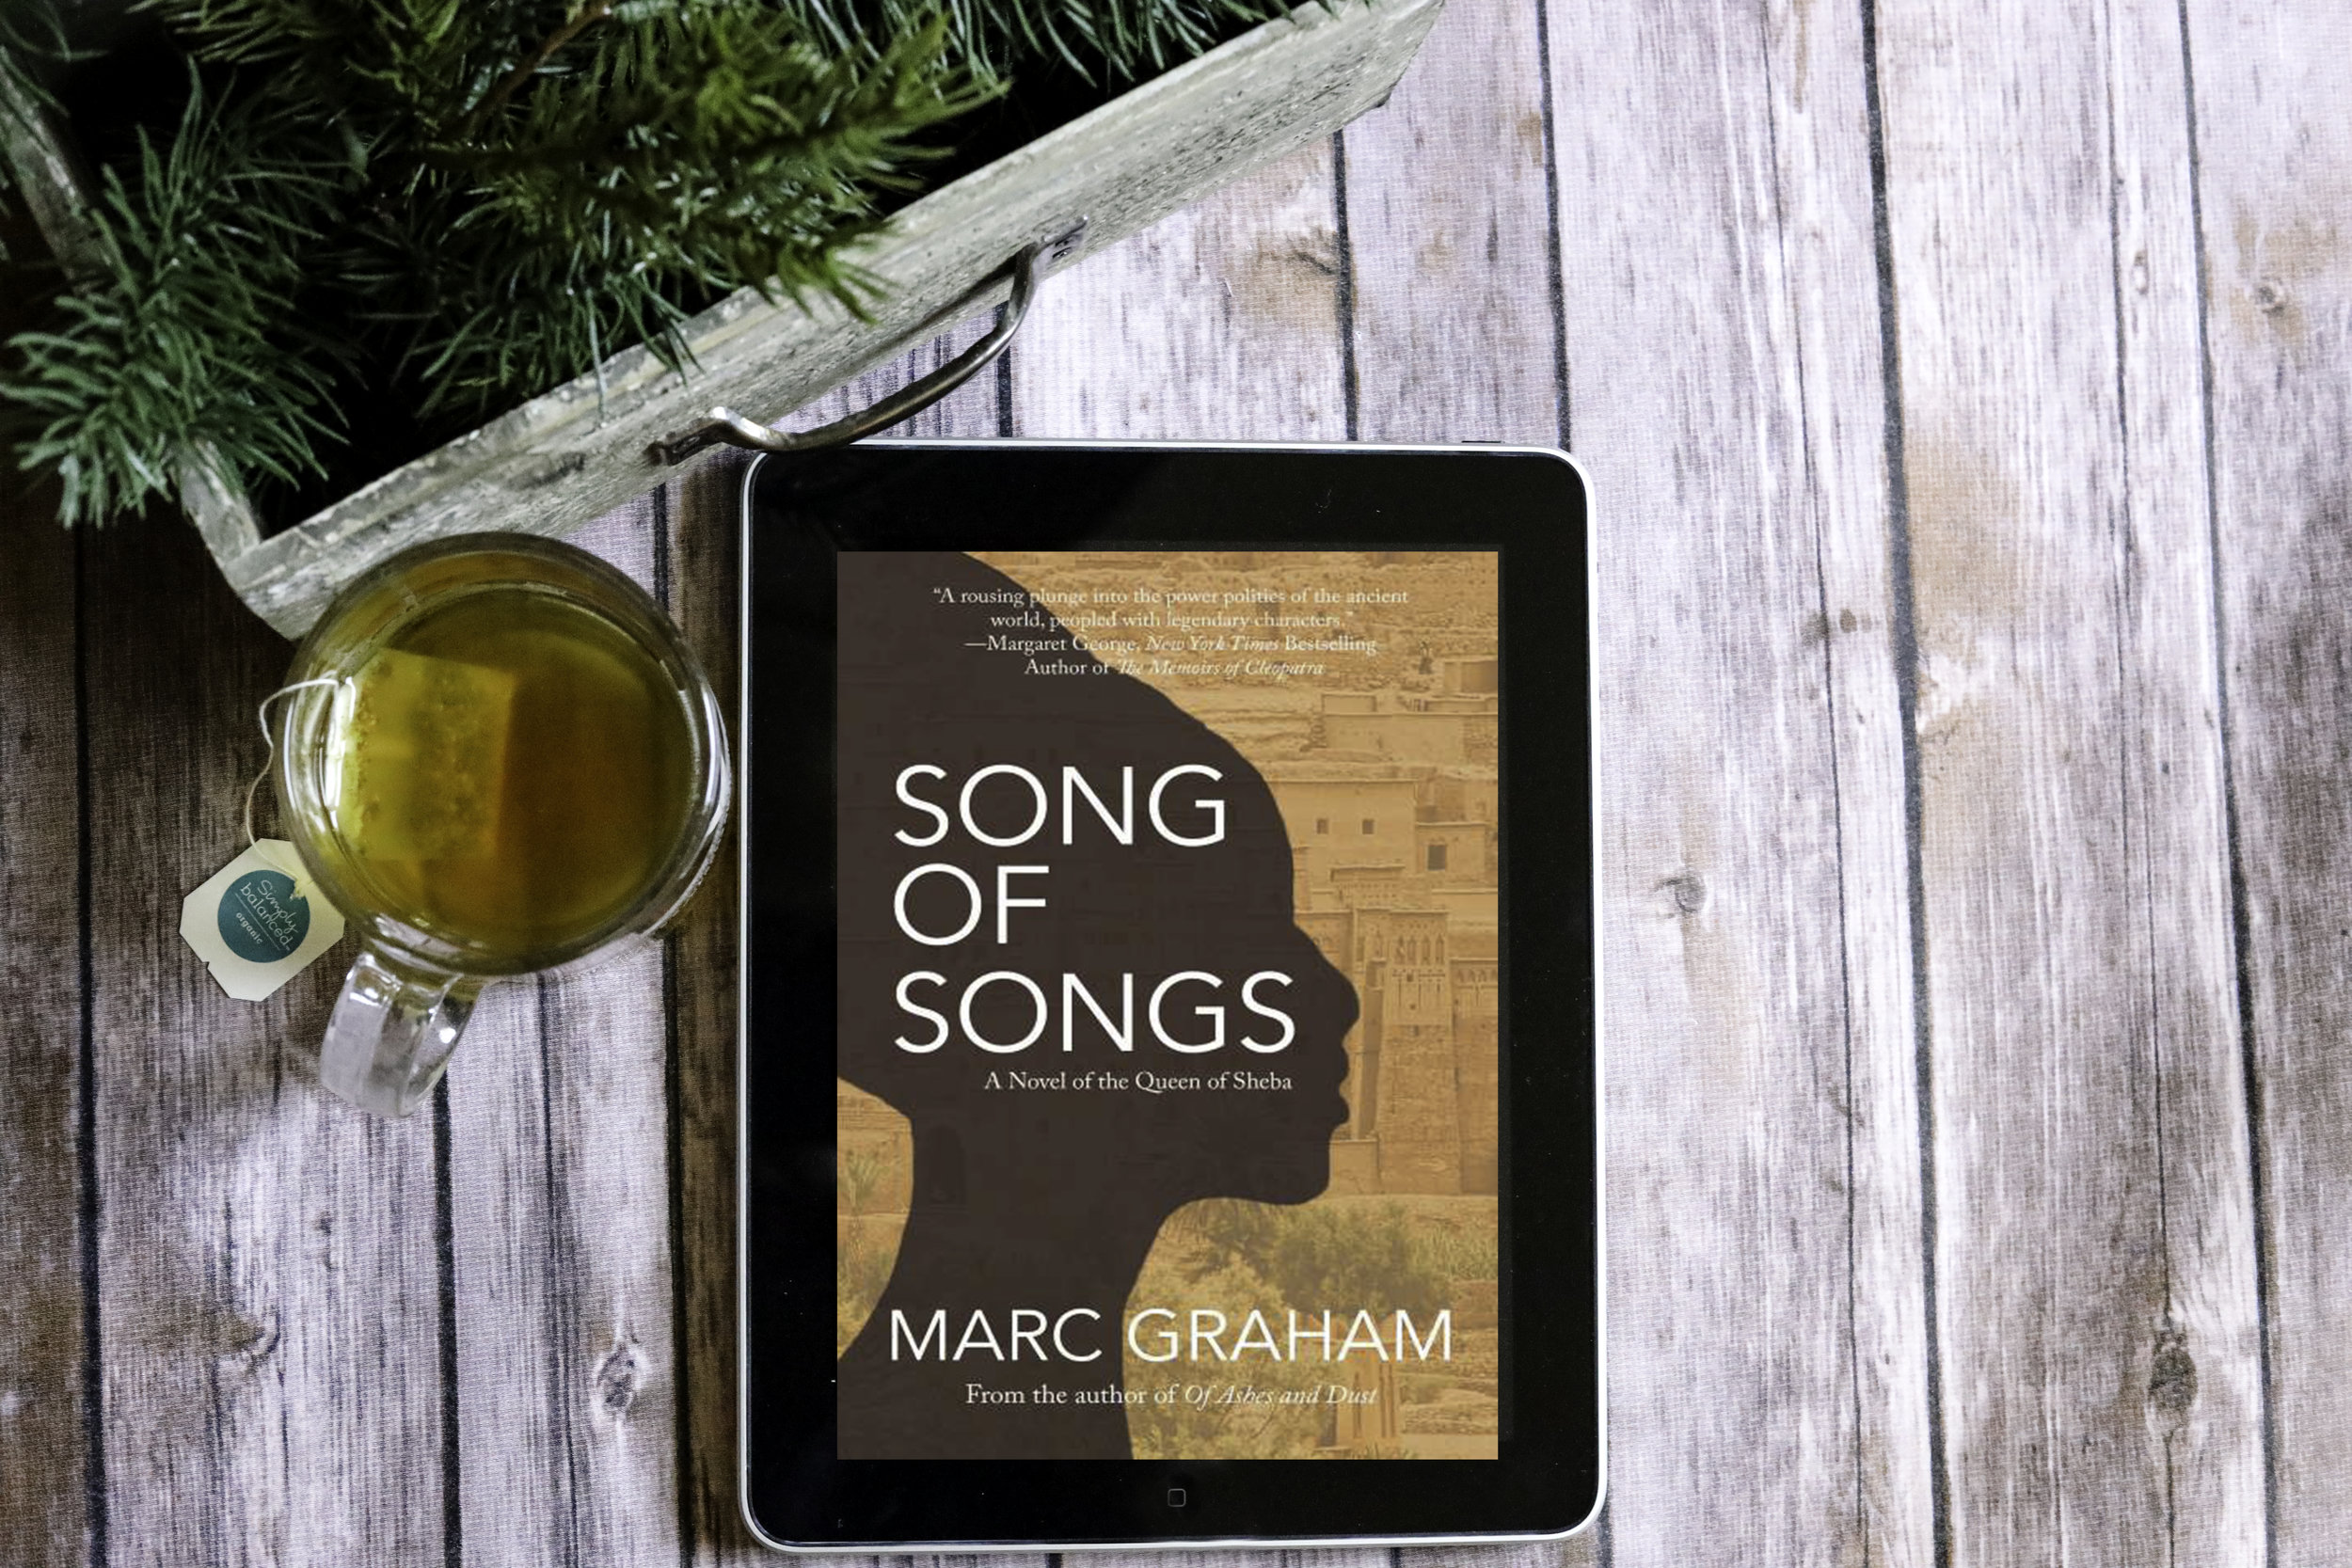 song of songs marc graham book feature giveaway